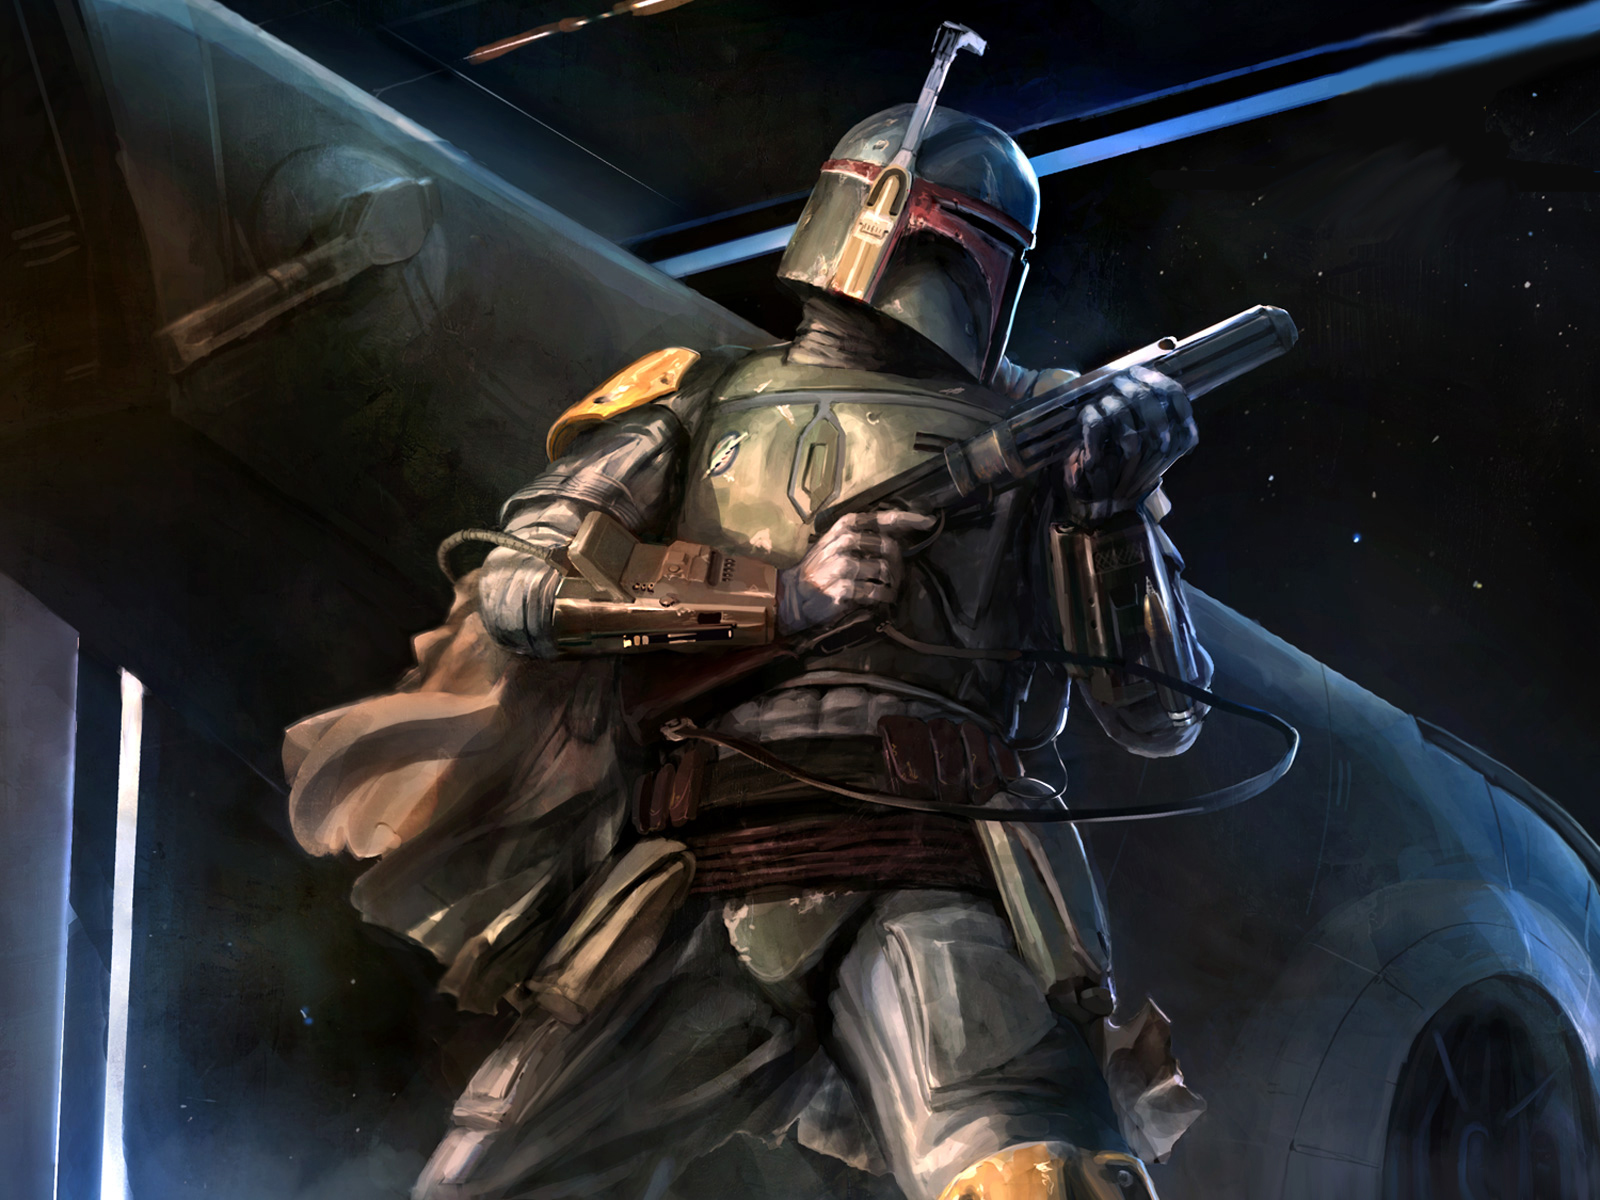 New Star Wars Game To Be Announced At E3 2012